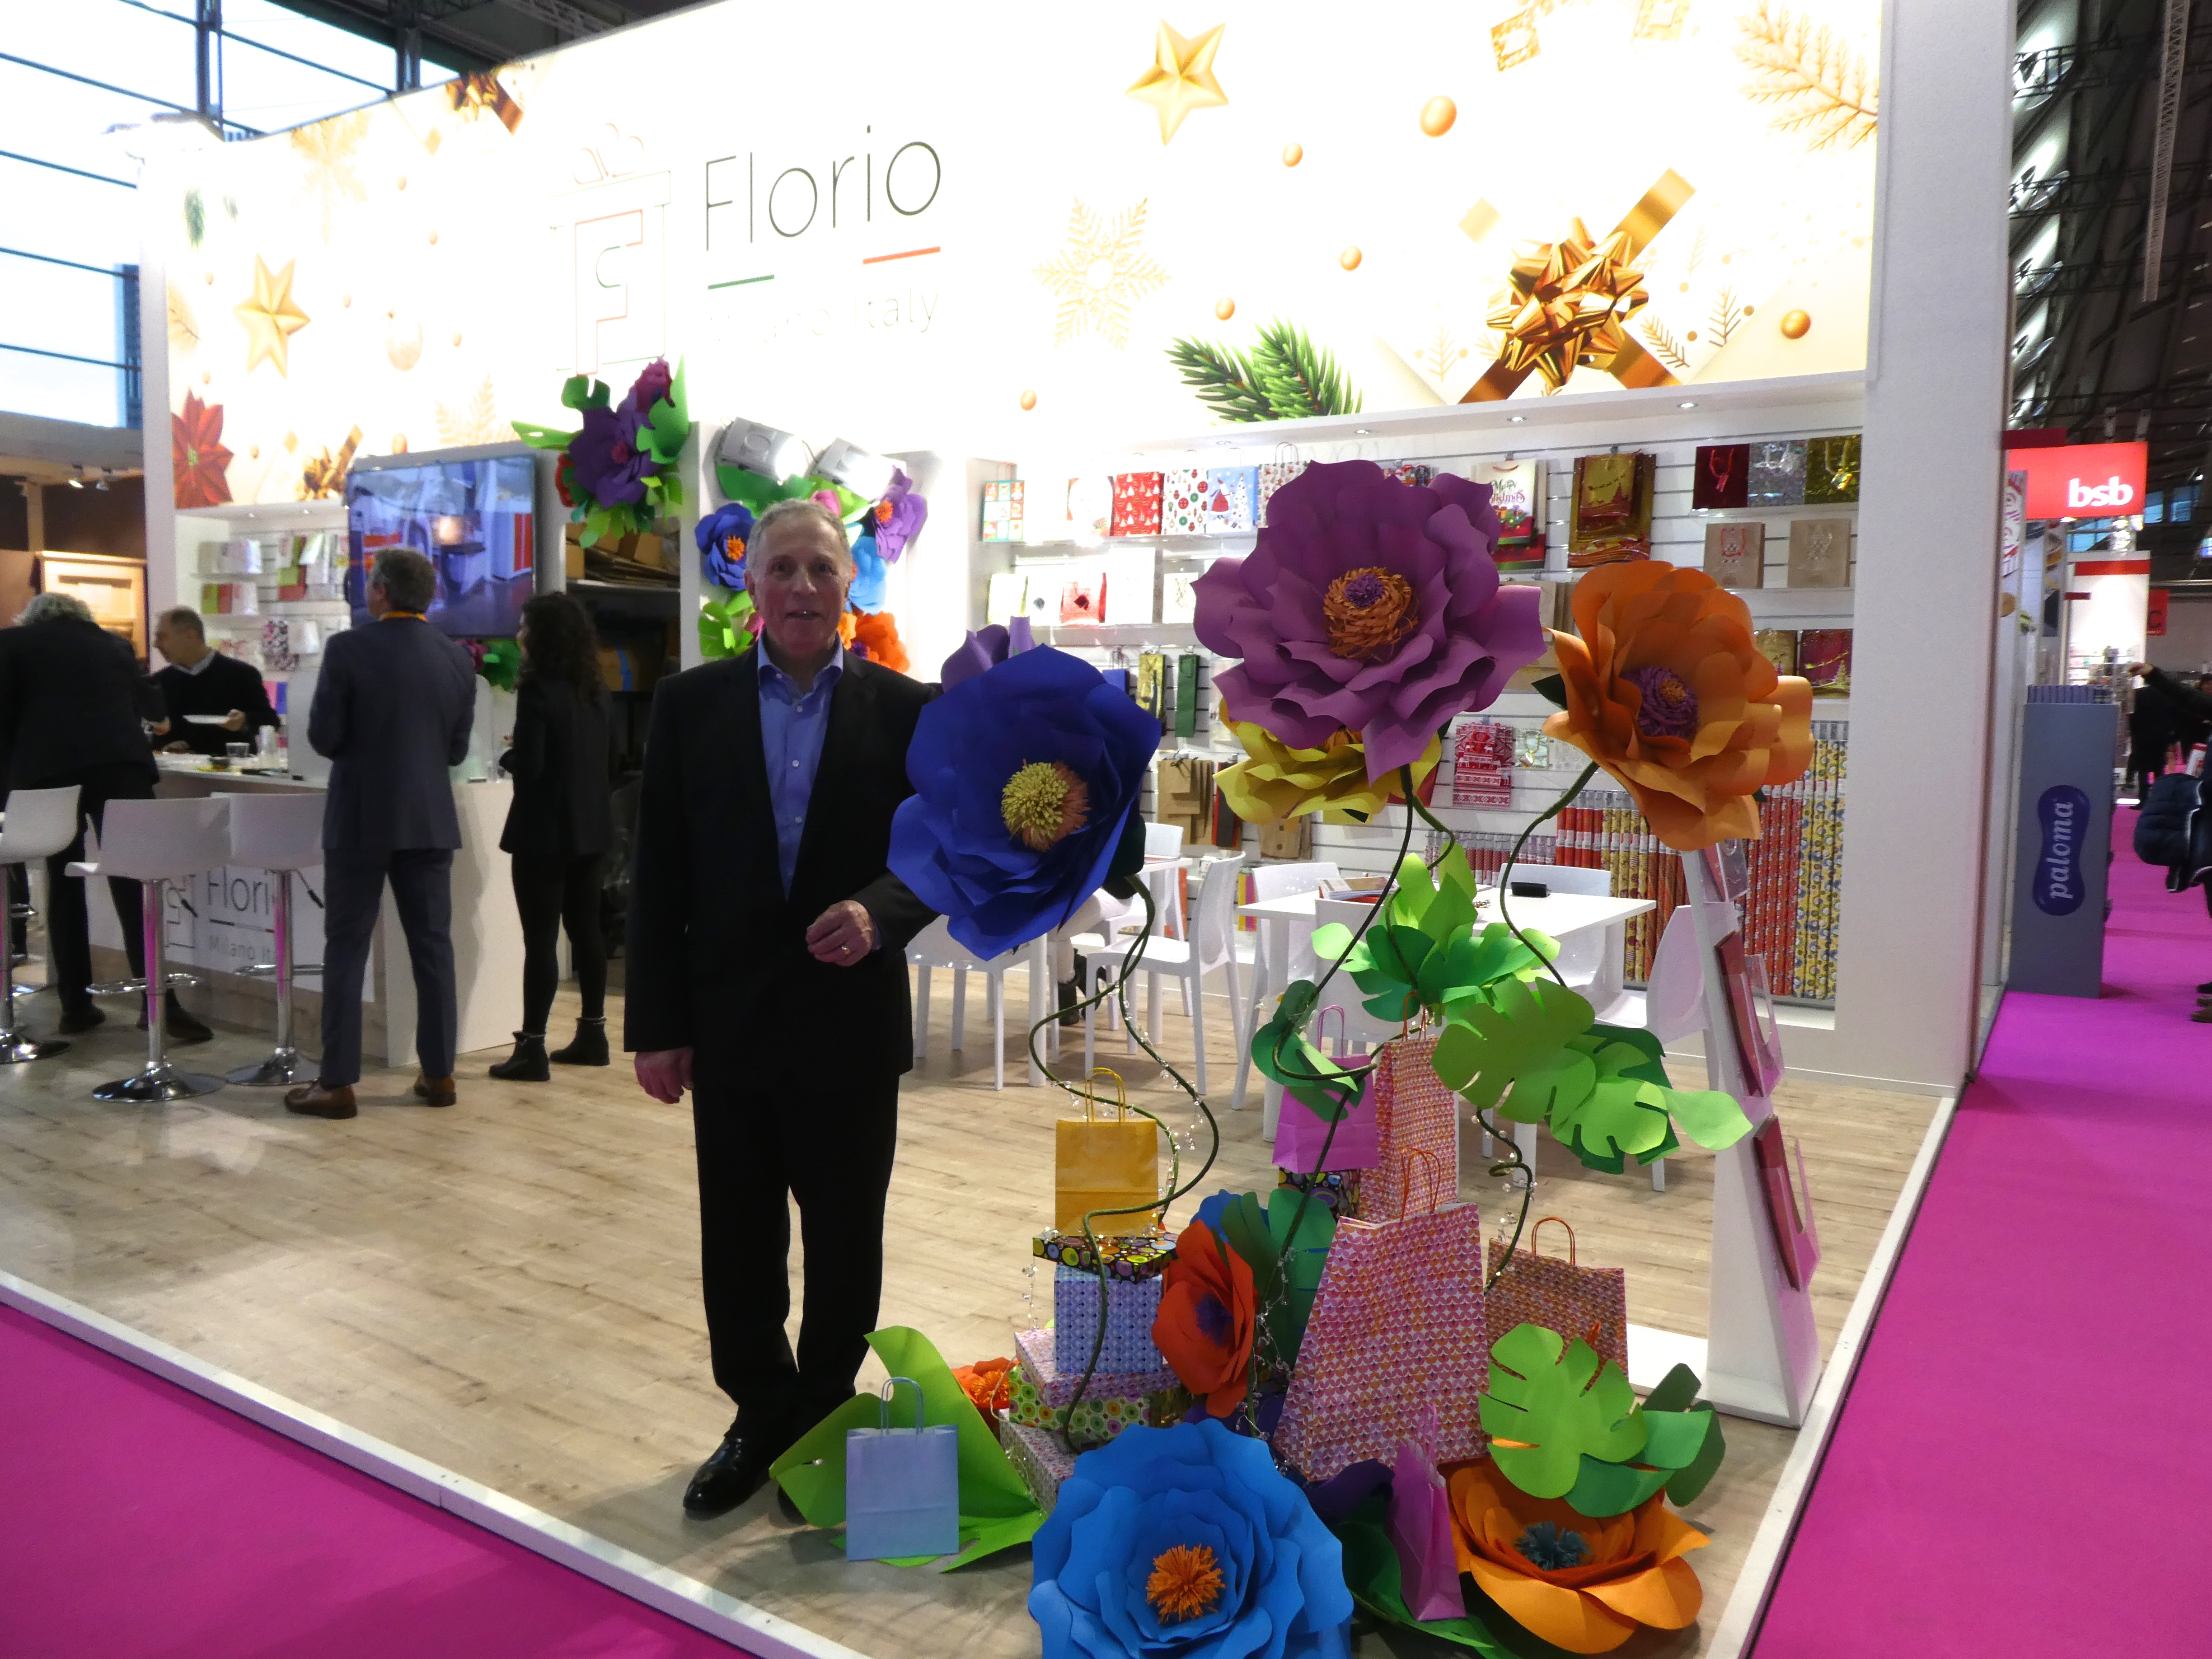 Above: UK industry stalwart Roger Freeman is having a 'blooming' good time working with Florio, a giftwrap manufacturer.